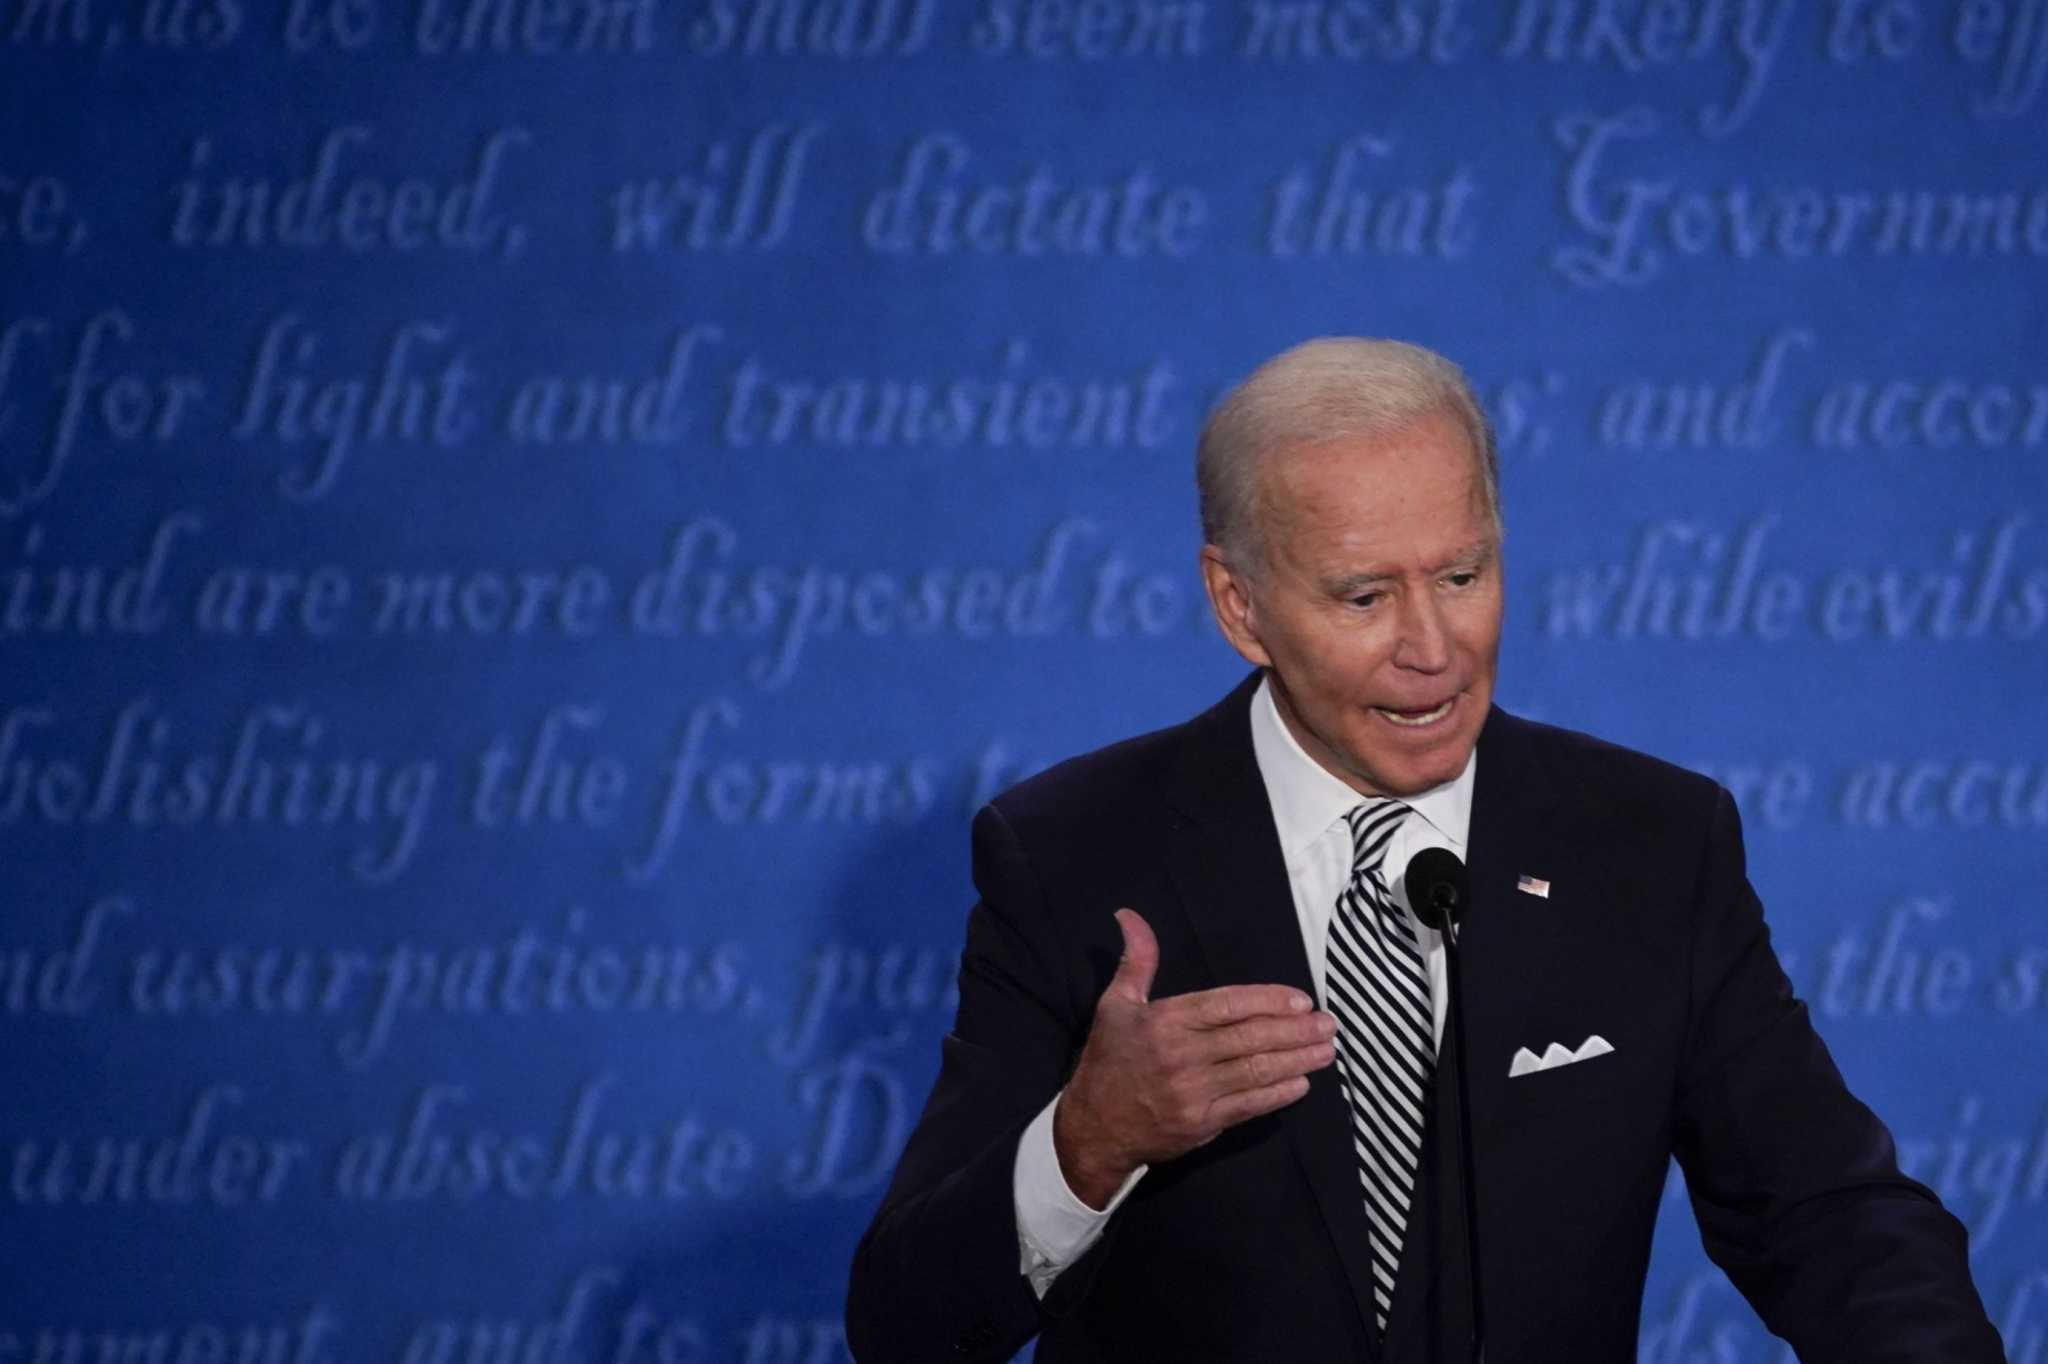 Biden tiptoes on 'court packing' to avoid eroding lead in polls